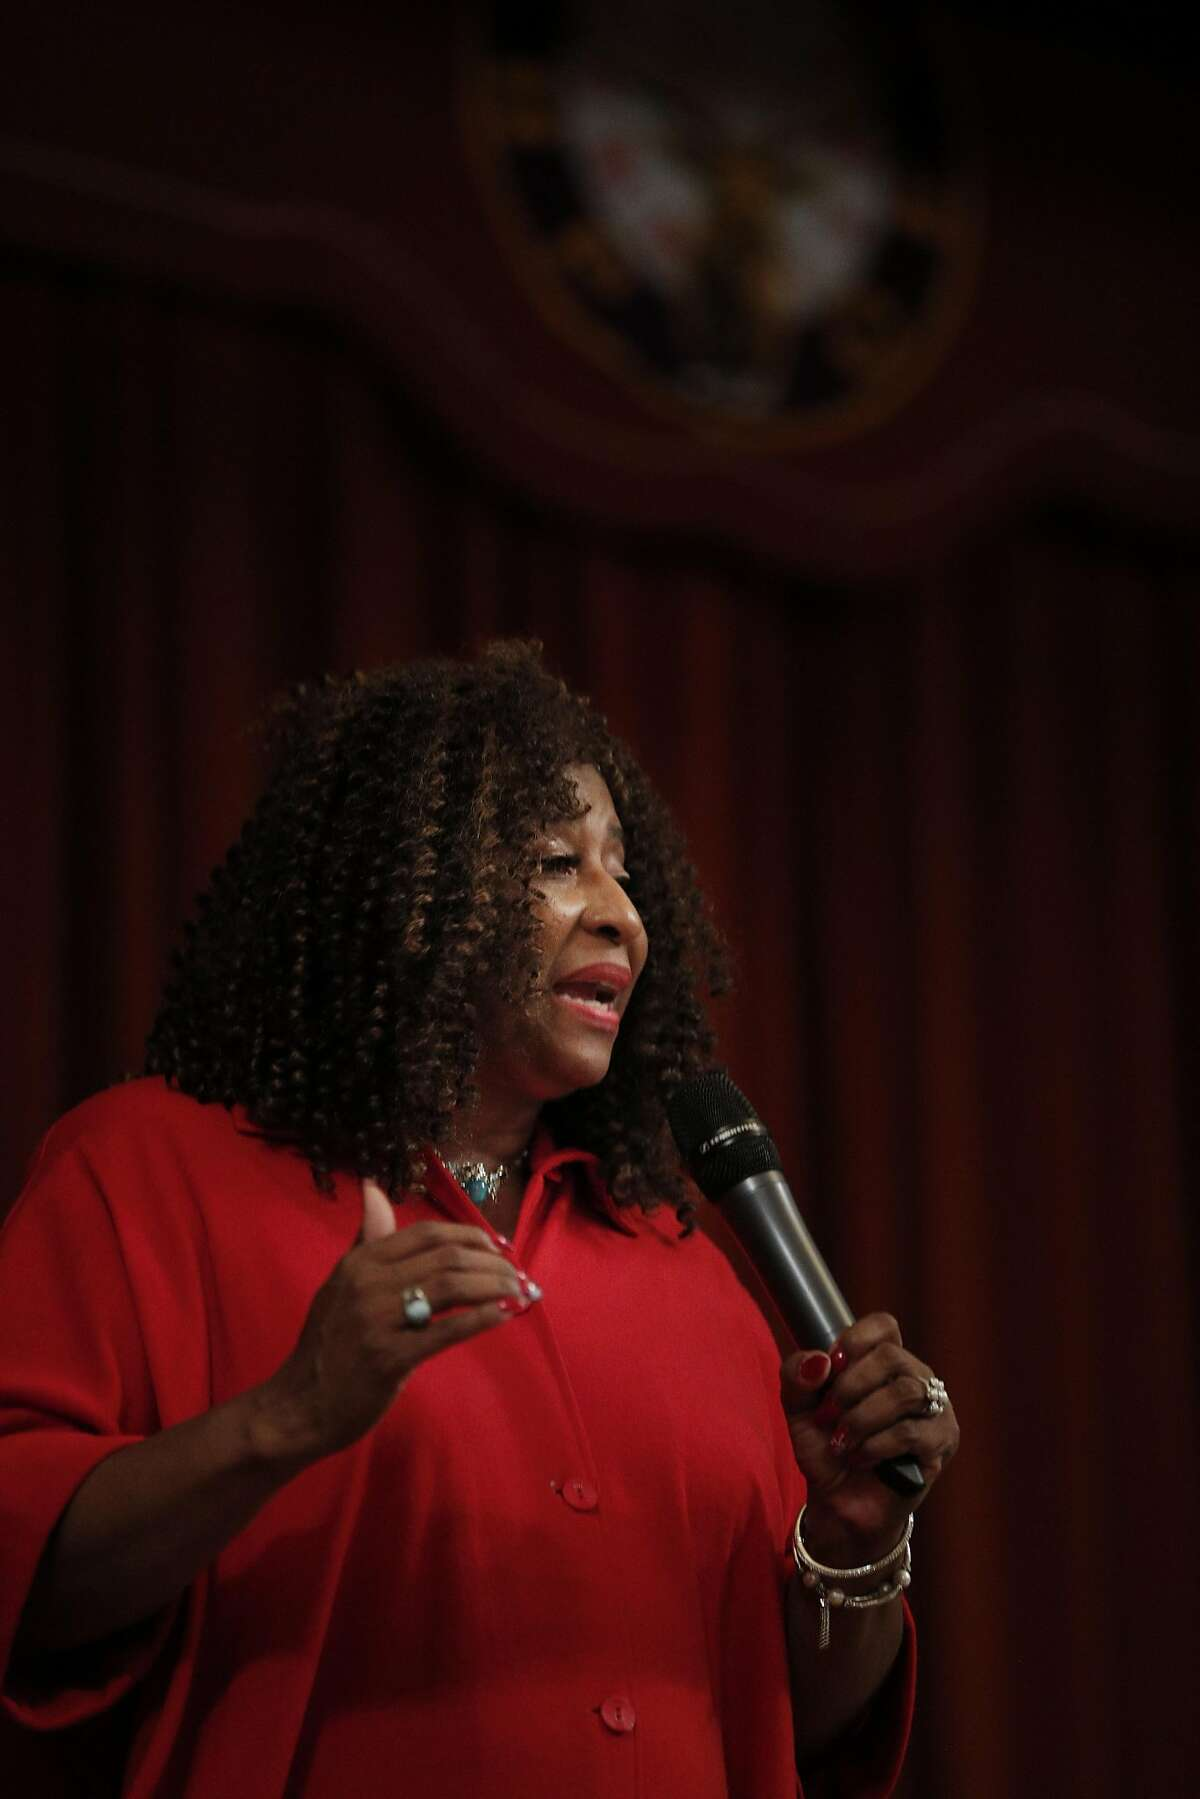 Pamela Price, who is running for Alameda County District Attorney, during a presentation of progressive candidates for several local elected offices at the Elks' Lodge in Alameda, on Wednesday, September 13, 2017.